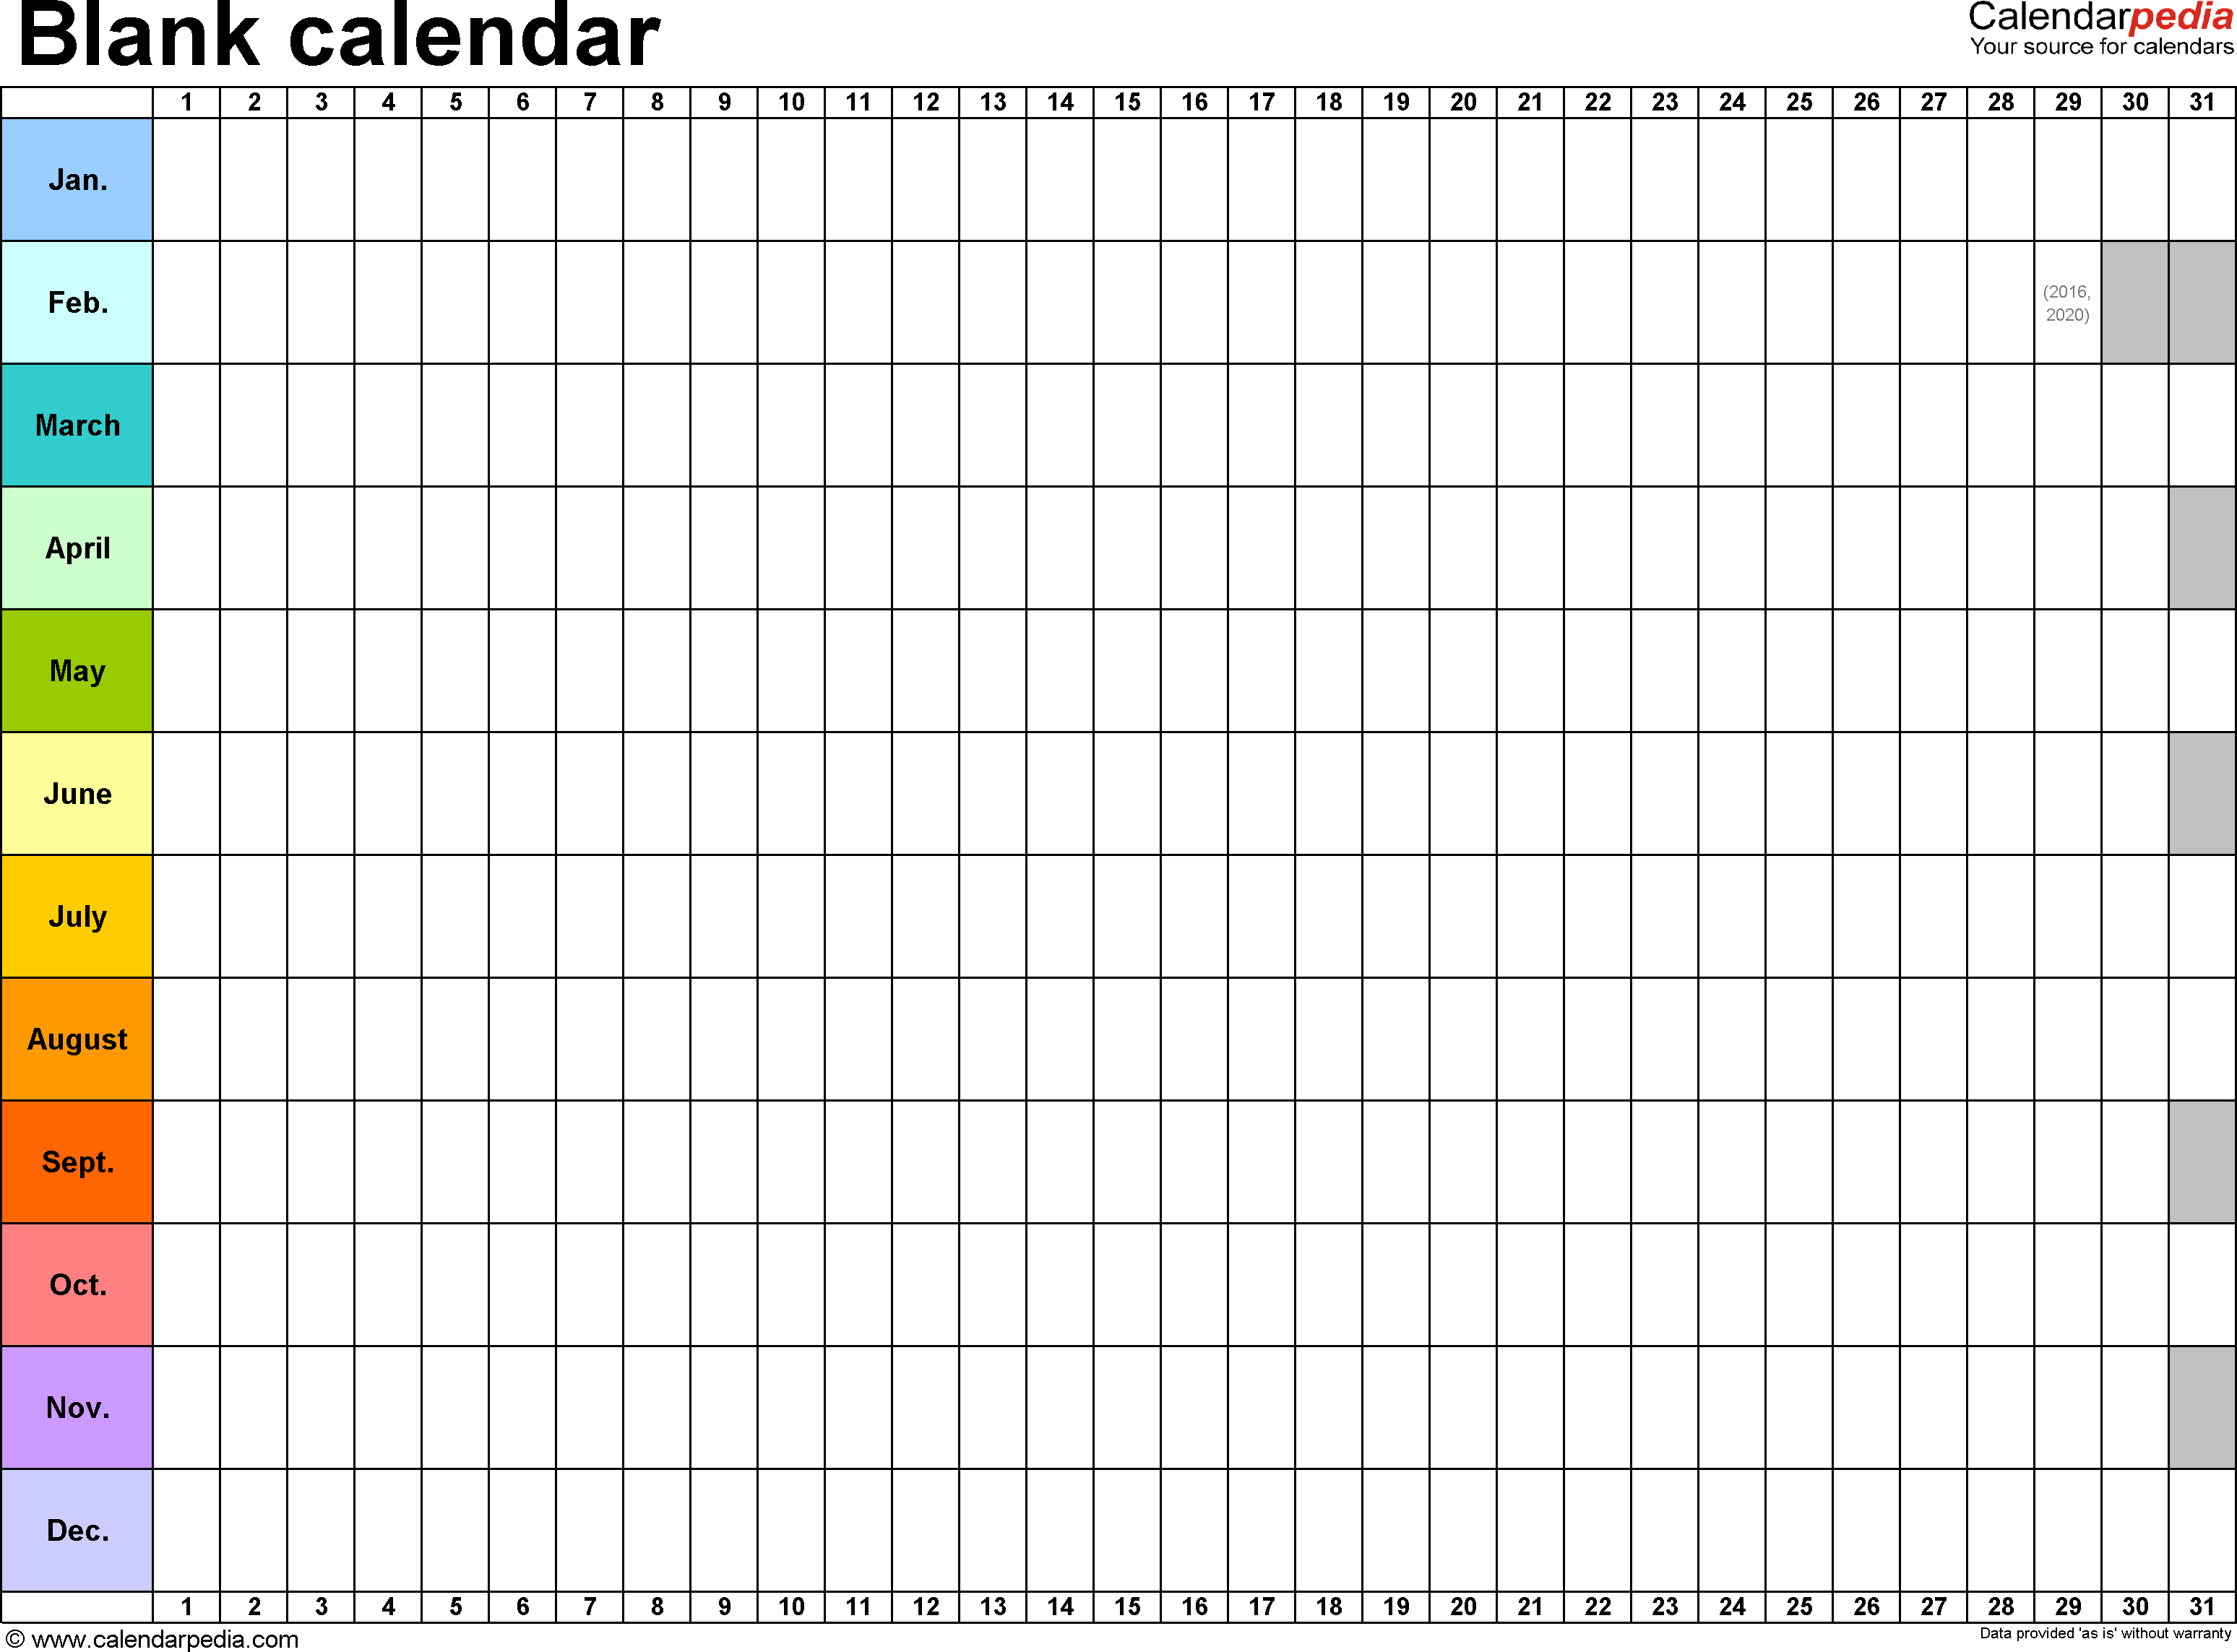 Blank Calendar - 9 Free Printable Microsoft Word Templates regarding Fill In Calendar Template Printable